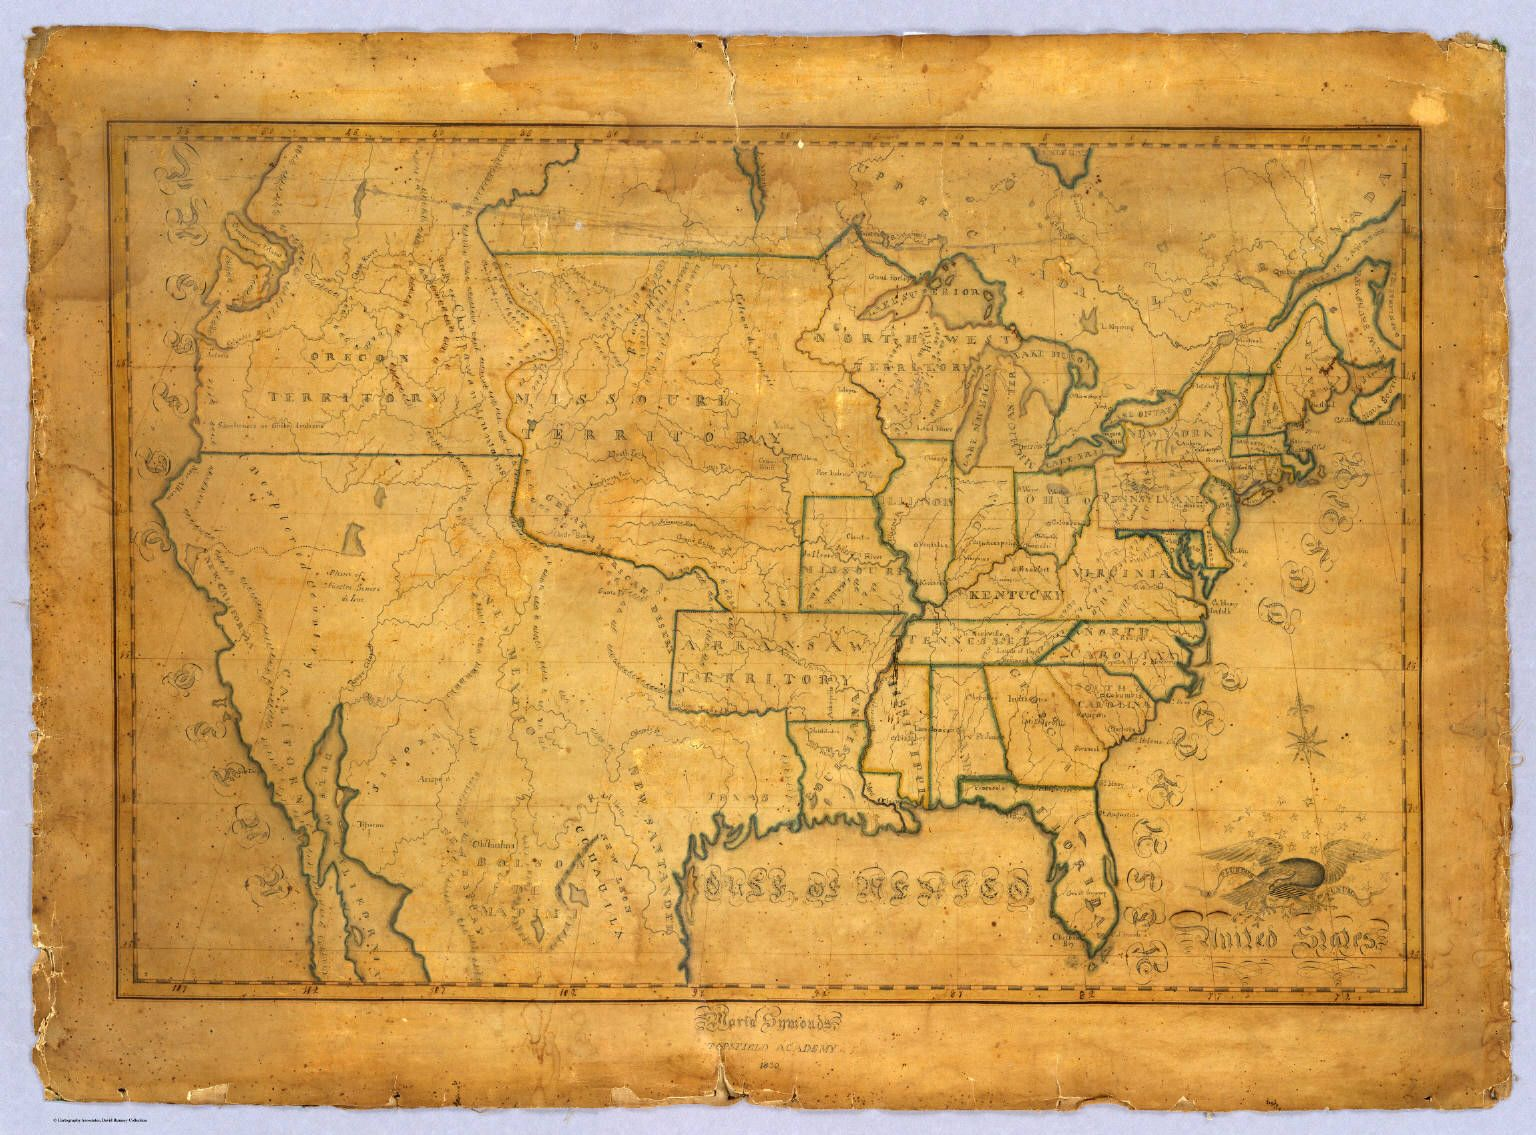 Handdrawn Maps Made By Thcentury School Children School - Old map of the us